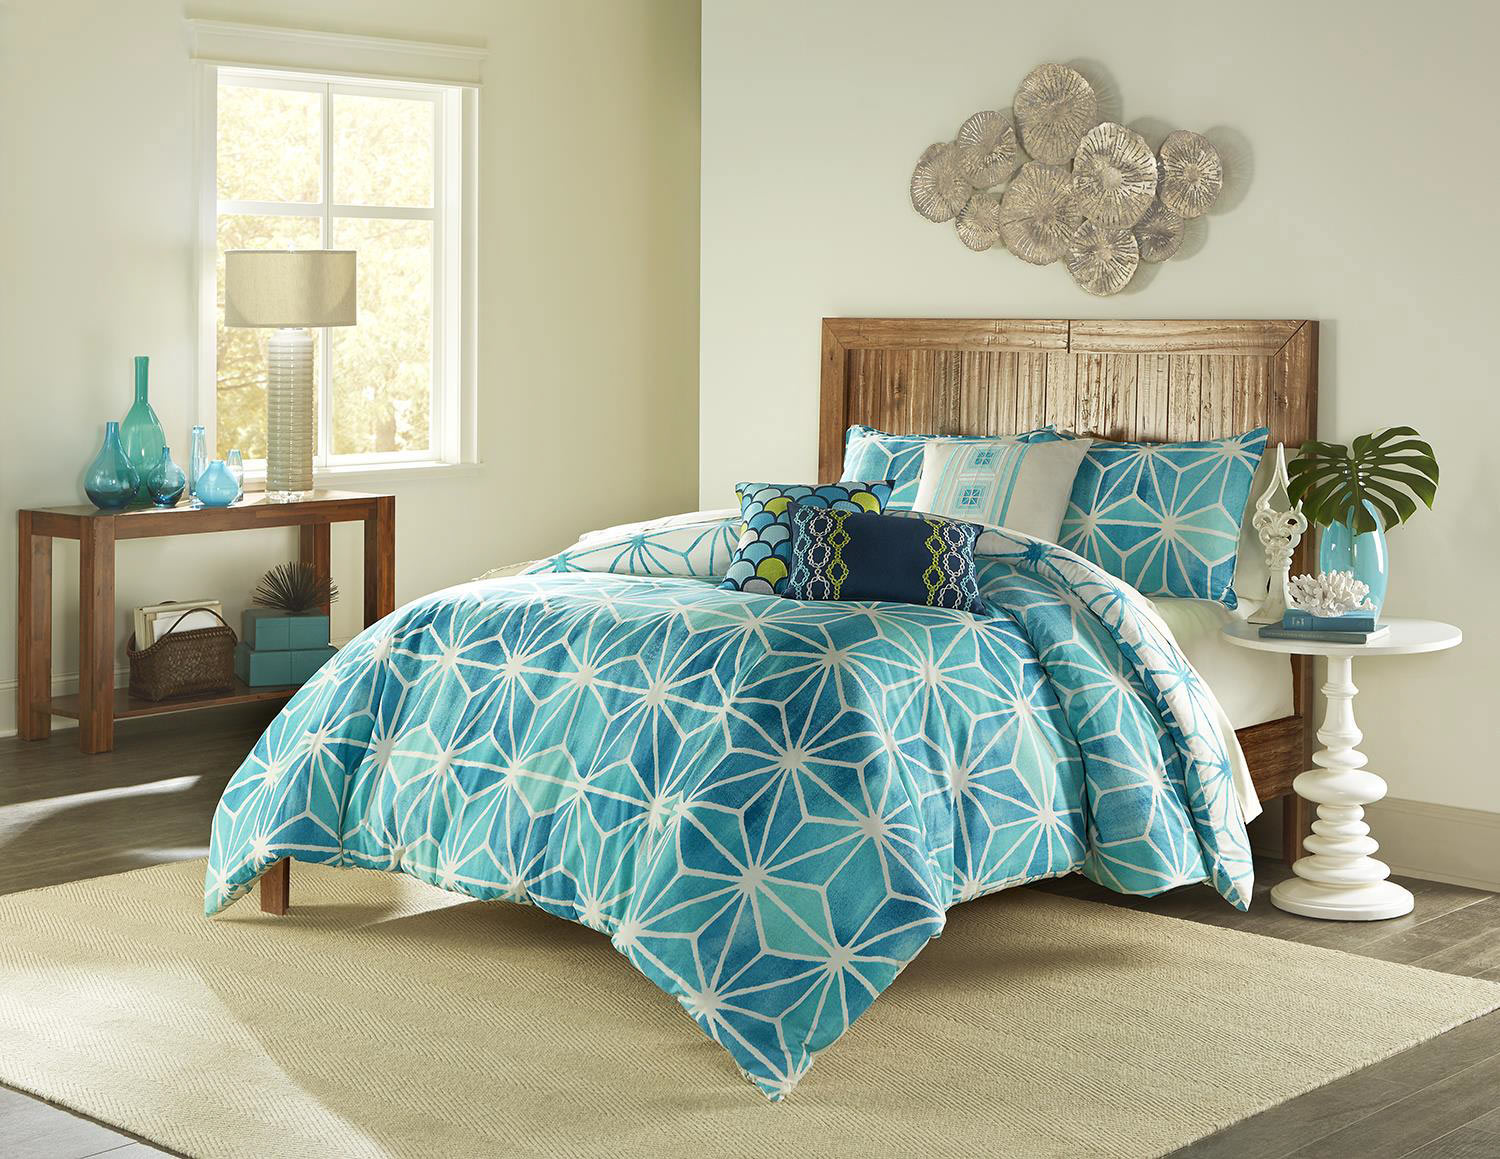 mesmerizing tel blue natori bedding and original rug